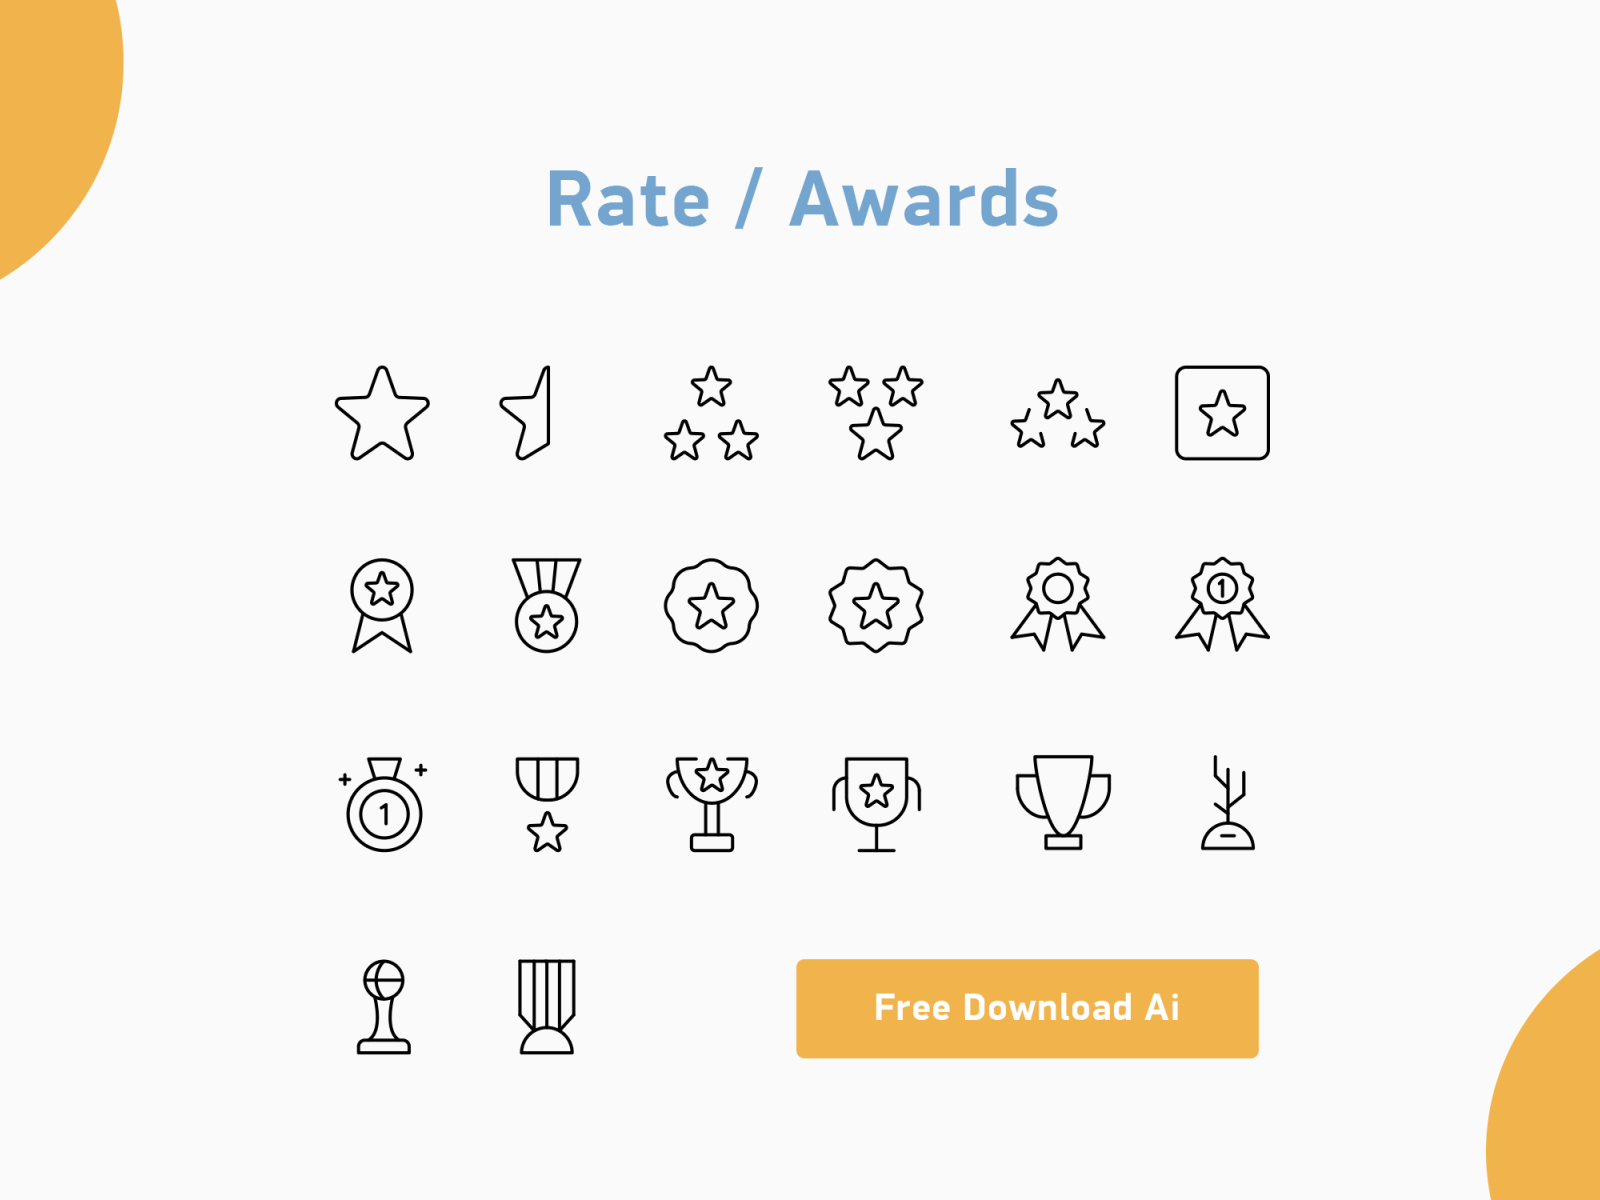 Rate / Awards